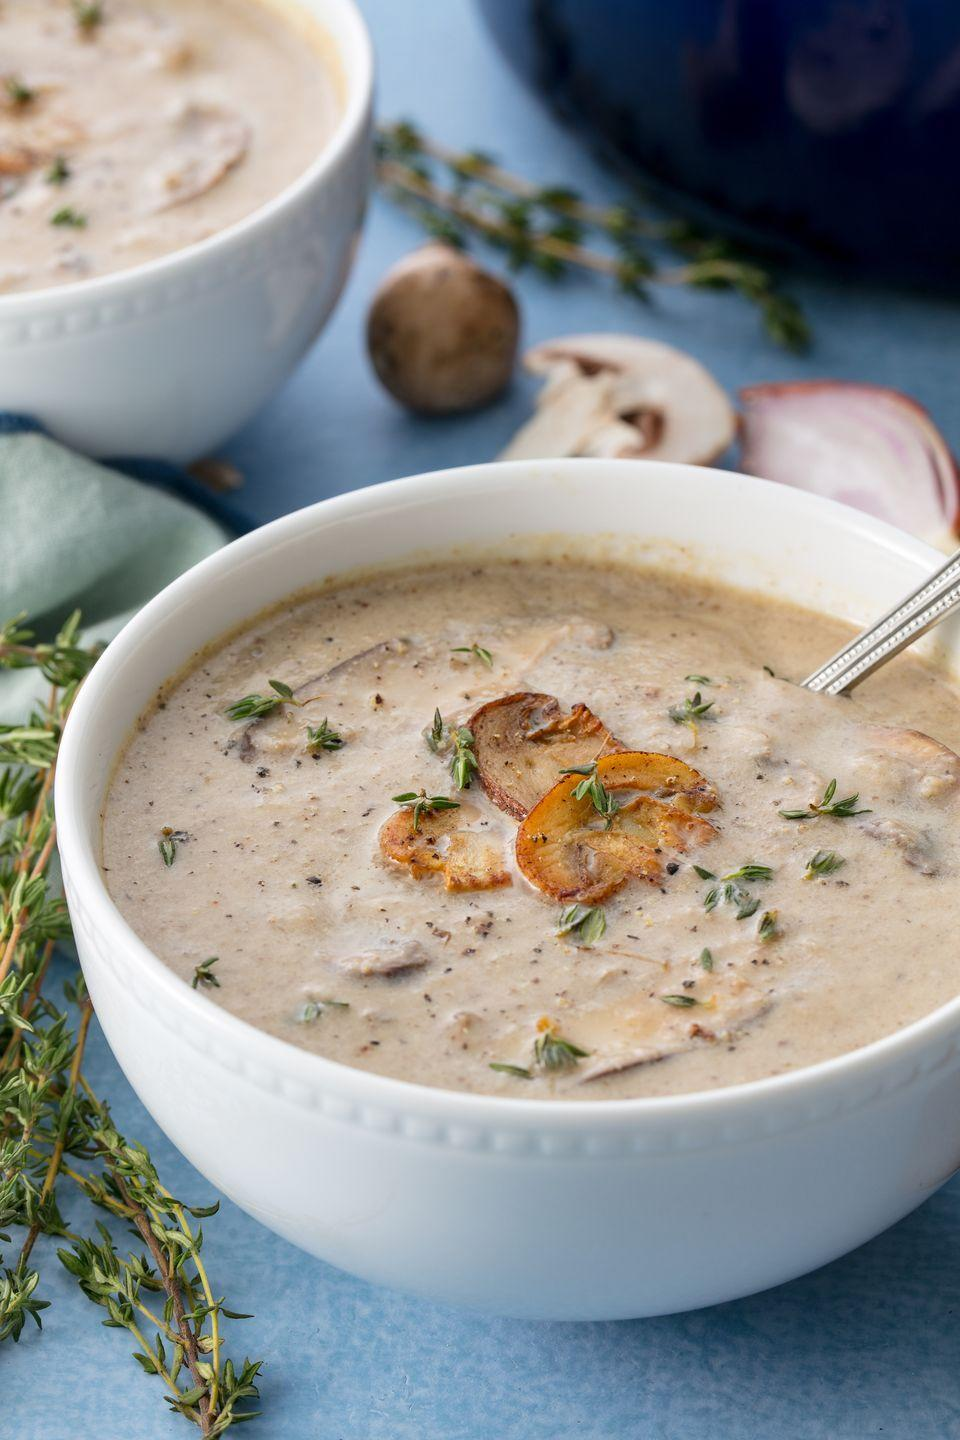 "<p>A creamy, delicious soup the French would be proud of.</p><p>Get the recipe from <a href=""https://www.delish.com/cooking/recipe-ideas/recipes/a55765/cream-of-mushroom-soup-recipe/"" rel=""nofollow noopener"" target=""_blank"" data-ylk=""slk:Delish"" class=""link rapid-noclick-resp"">Delish</a>.</p>"